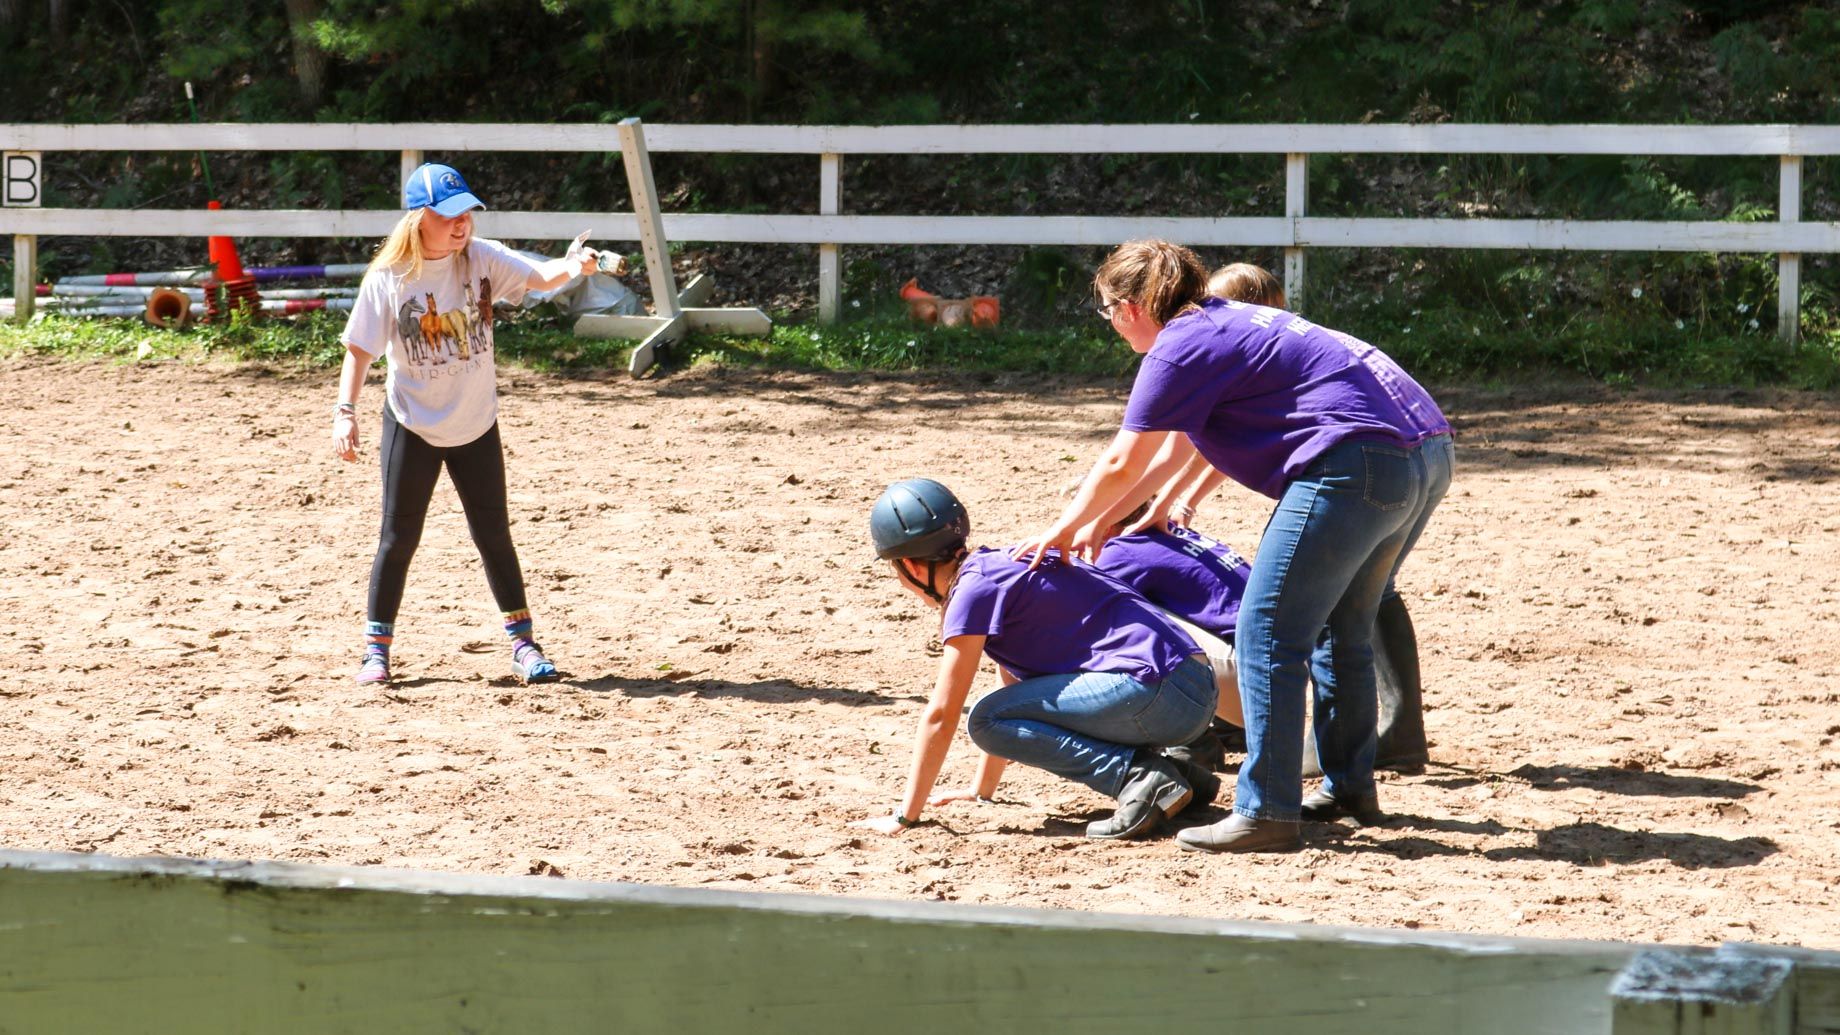 Campers participate in horseback riding exercise